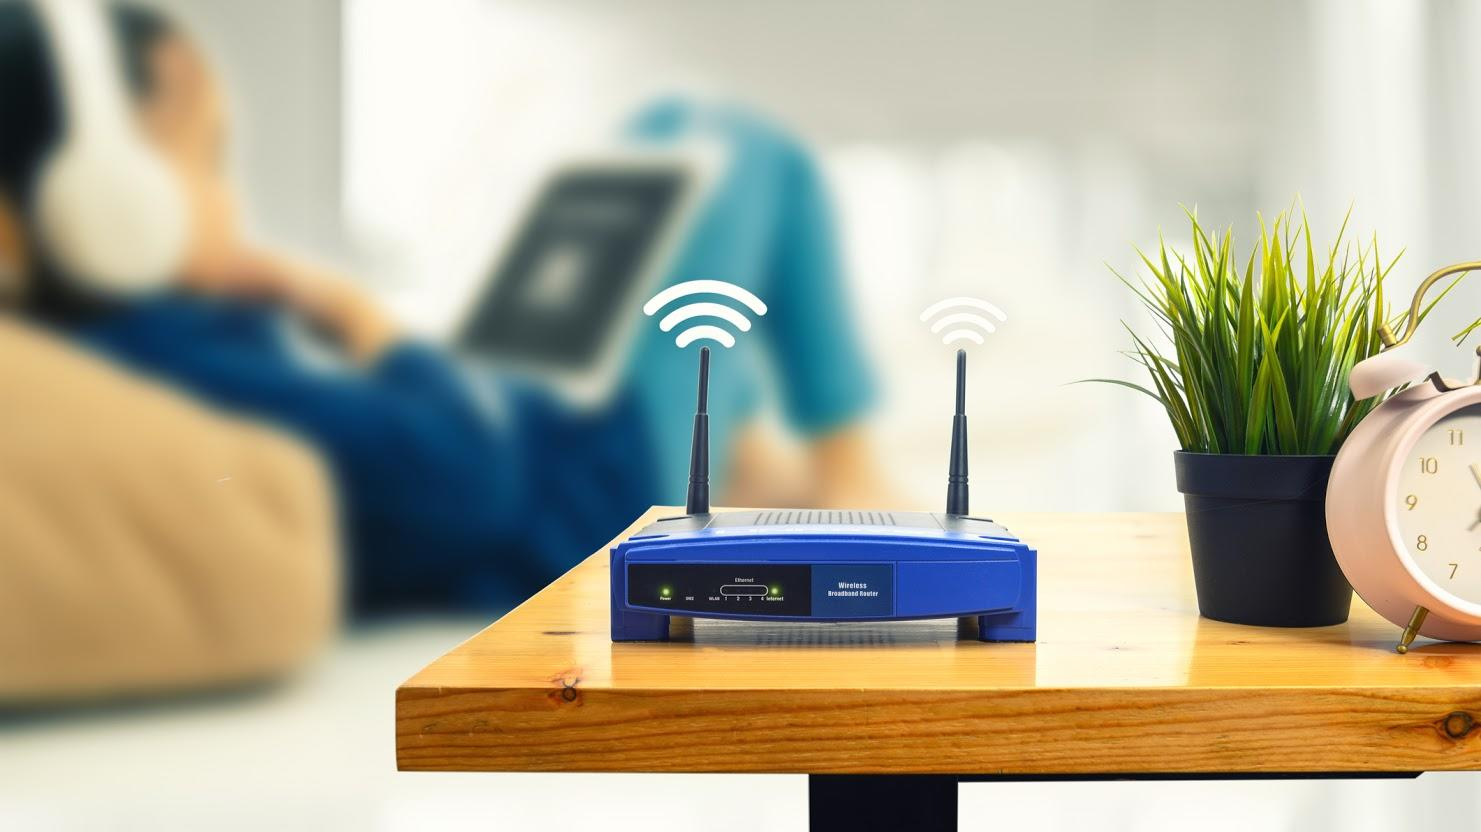 How to use random hardware addresses to improve Wi-Fi security?